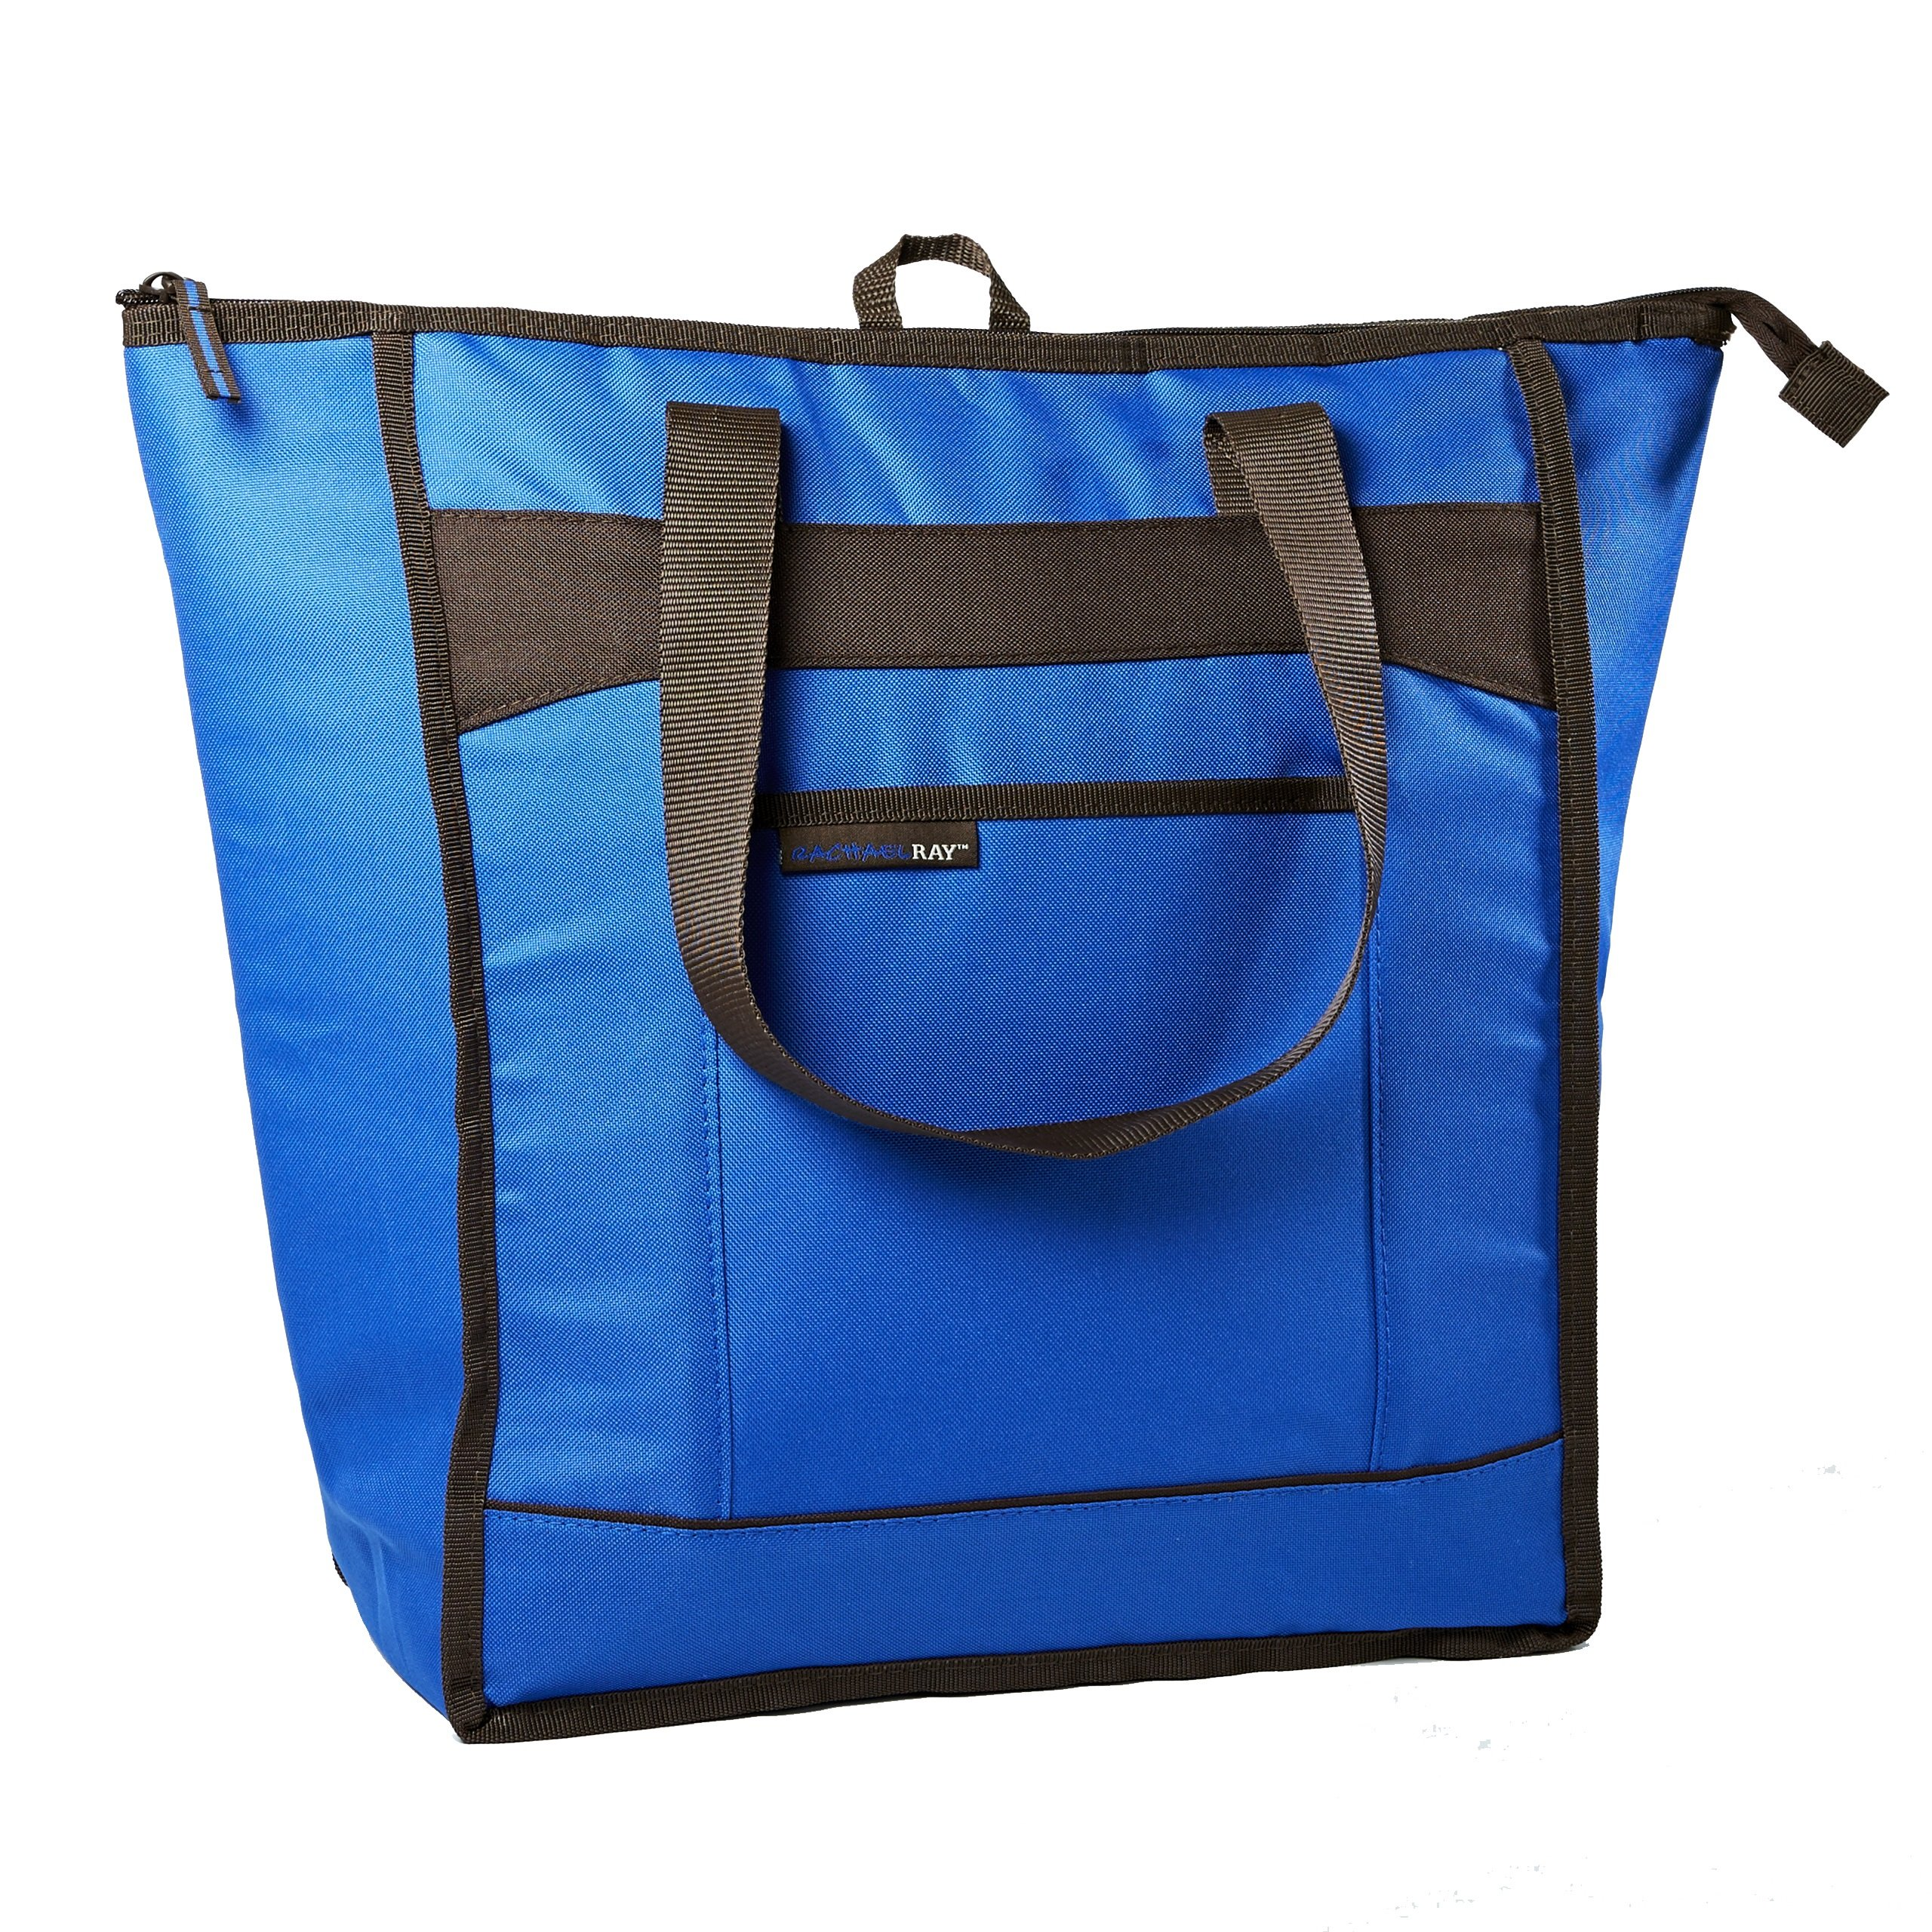 Rachael Ray ChillOut Thermal Tote, Insulated Bag for  Grocery Shopping /Entertaining, Transport Hot and Cold Food, Blue